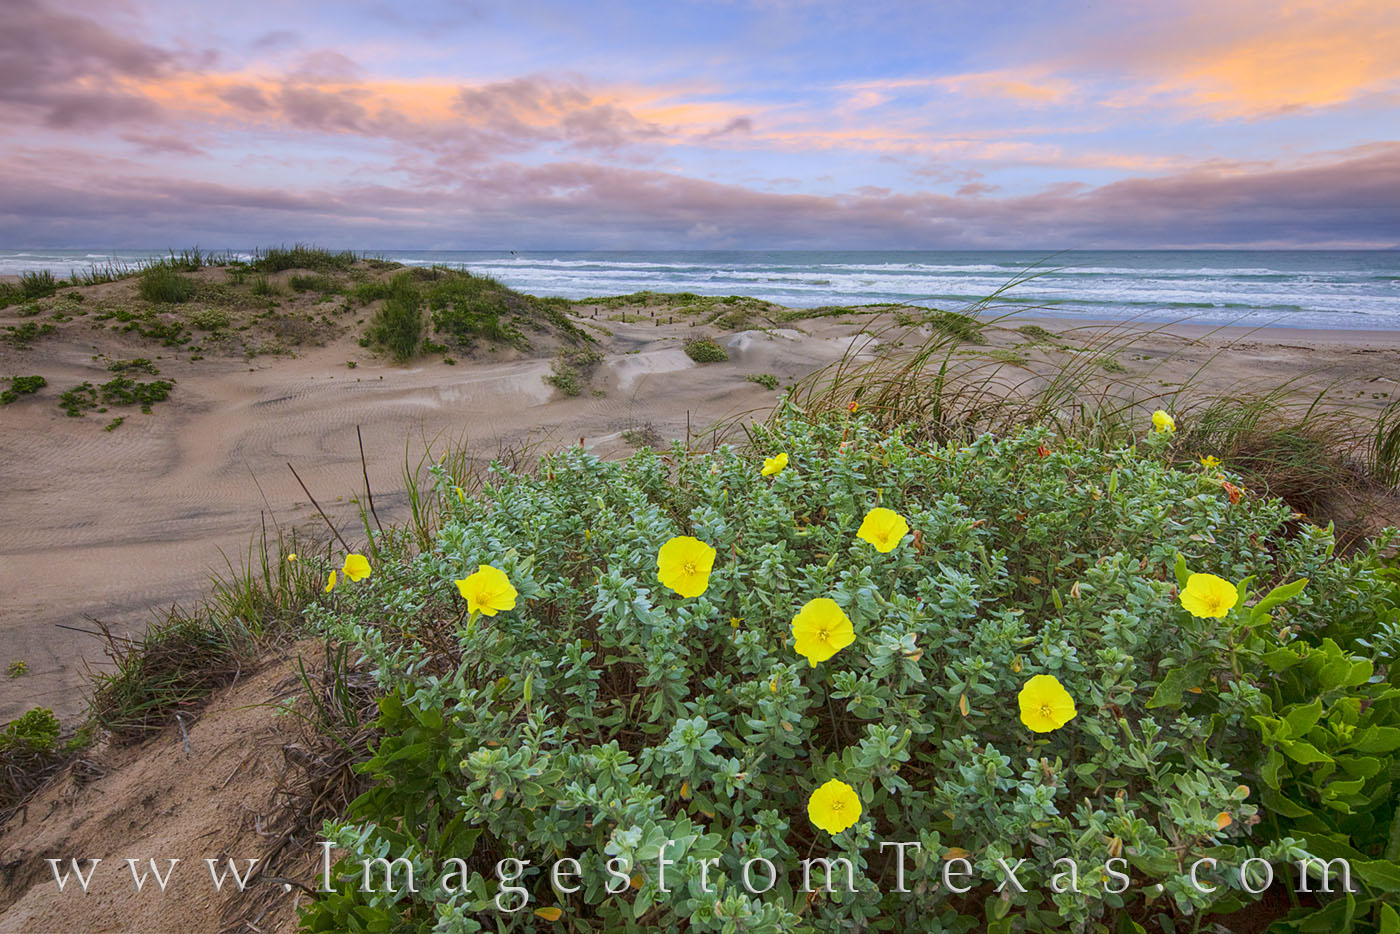 Texas wildflowers, south padre island, flowers, yellow, primrose, beach, sand dunes, gulf of mexico, shore, photo